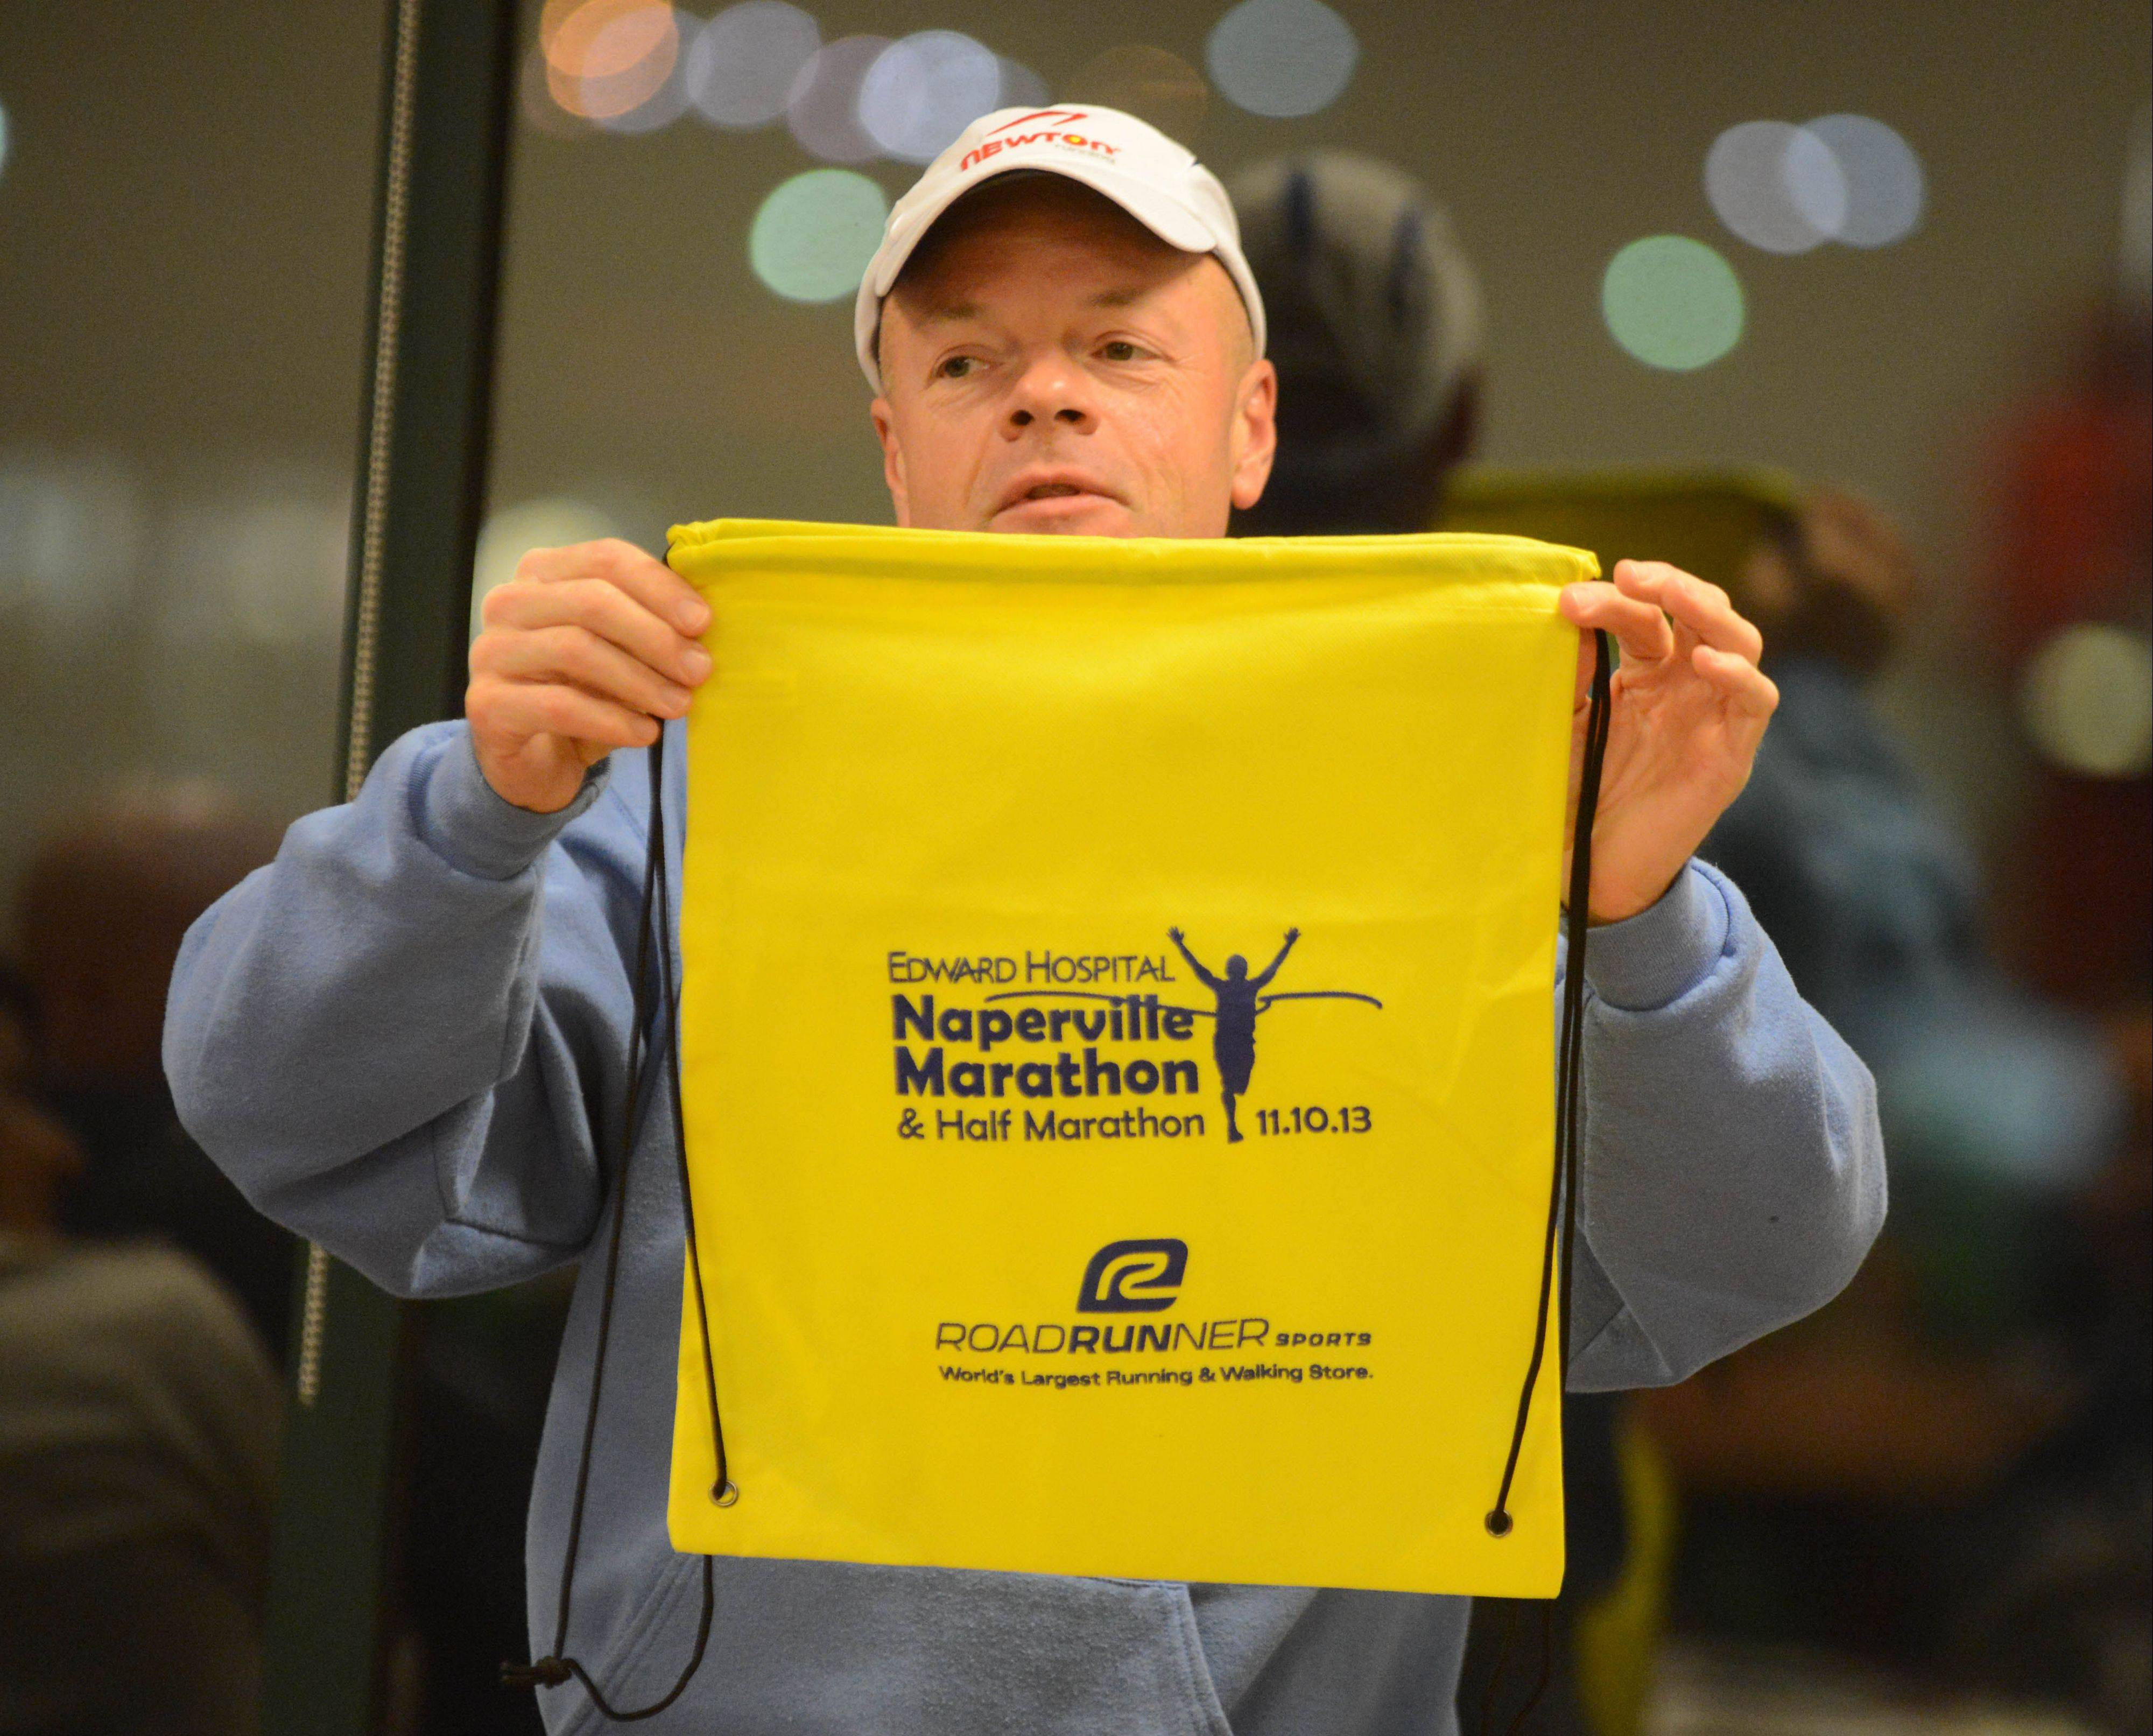 Tom Horvath displays the gear bag each registered runner will receive during an October meeting of volunteers